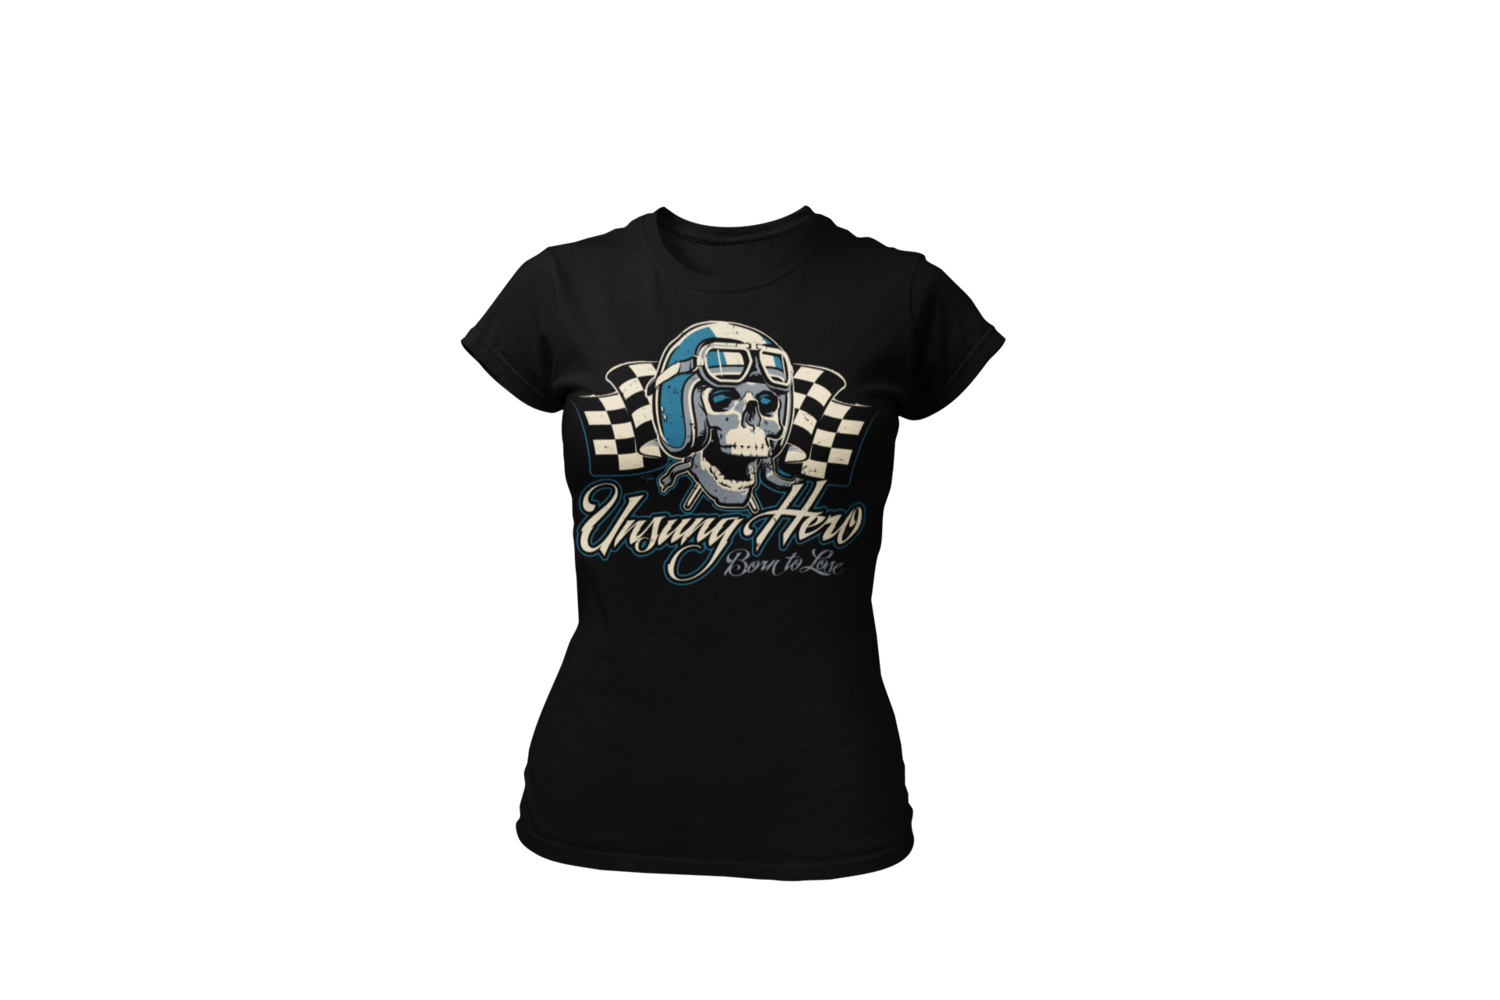 """USUNG HERO """"skull"""" T-SHIRT WOMAN by Ger """"Dutch Courage"""" Peters artwork"""